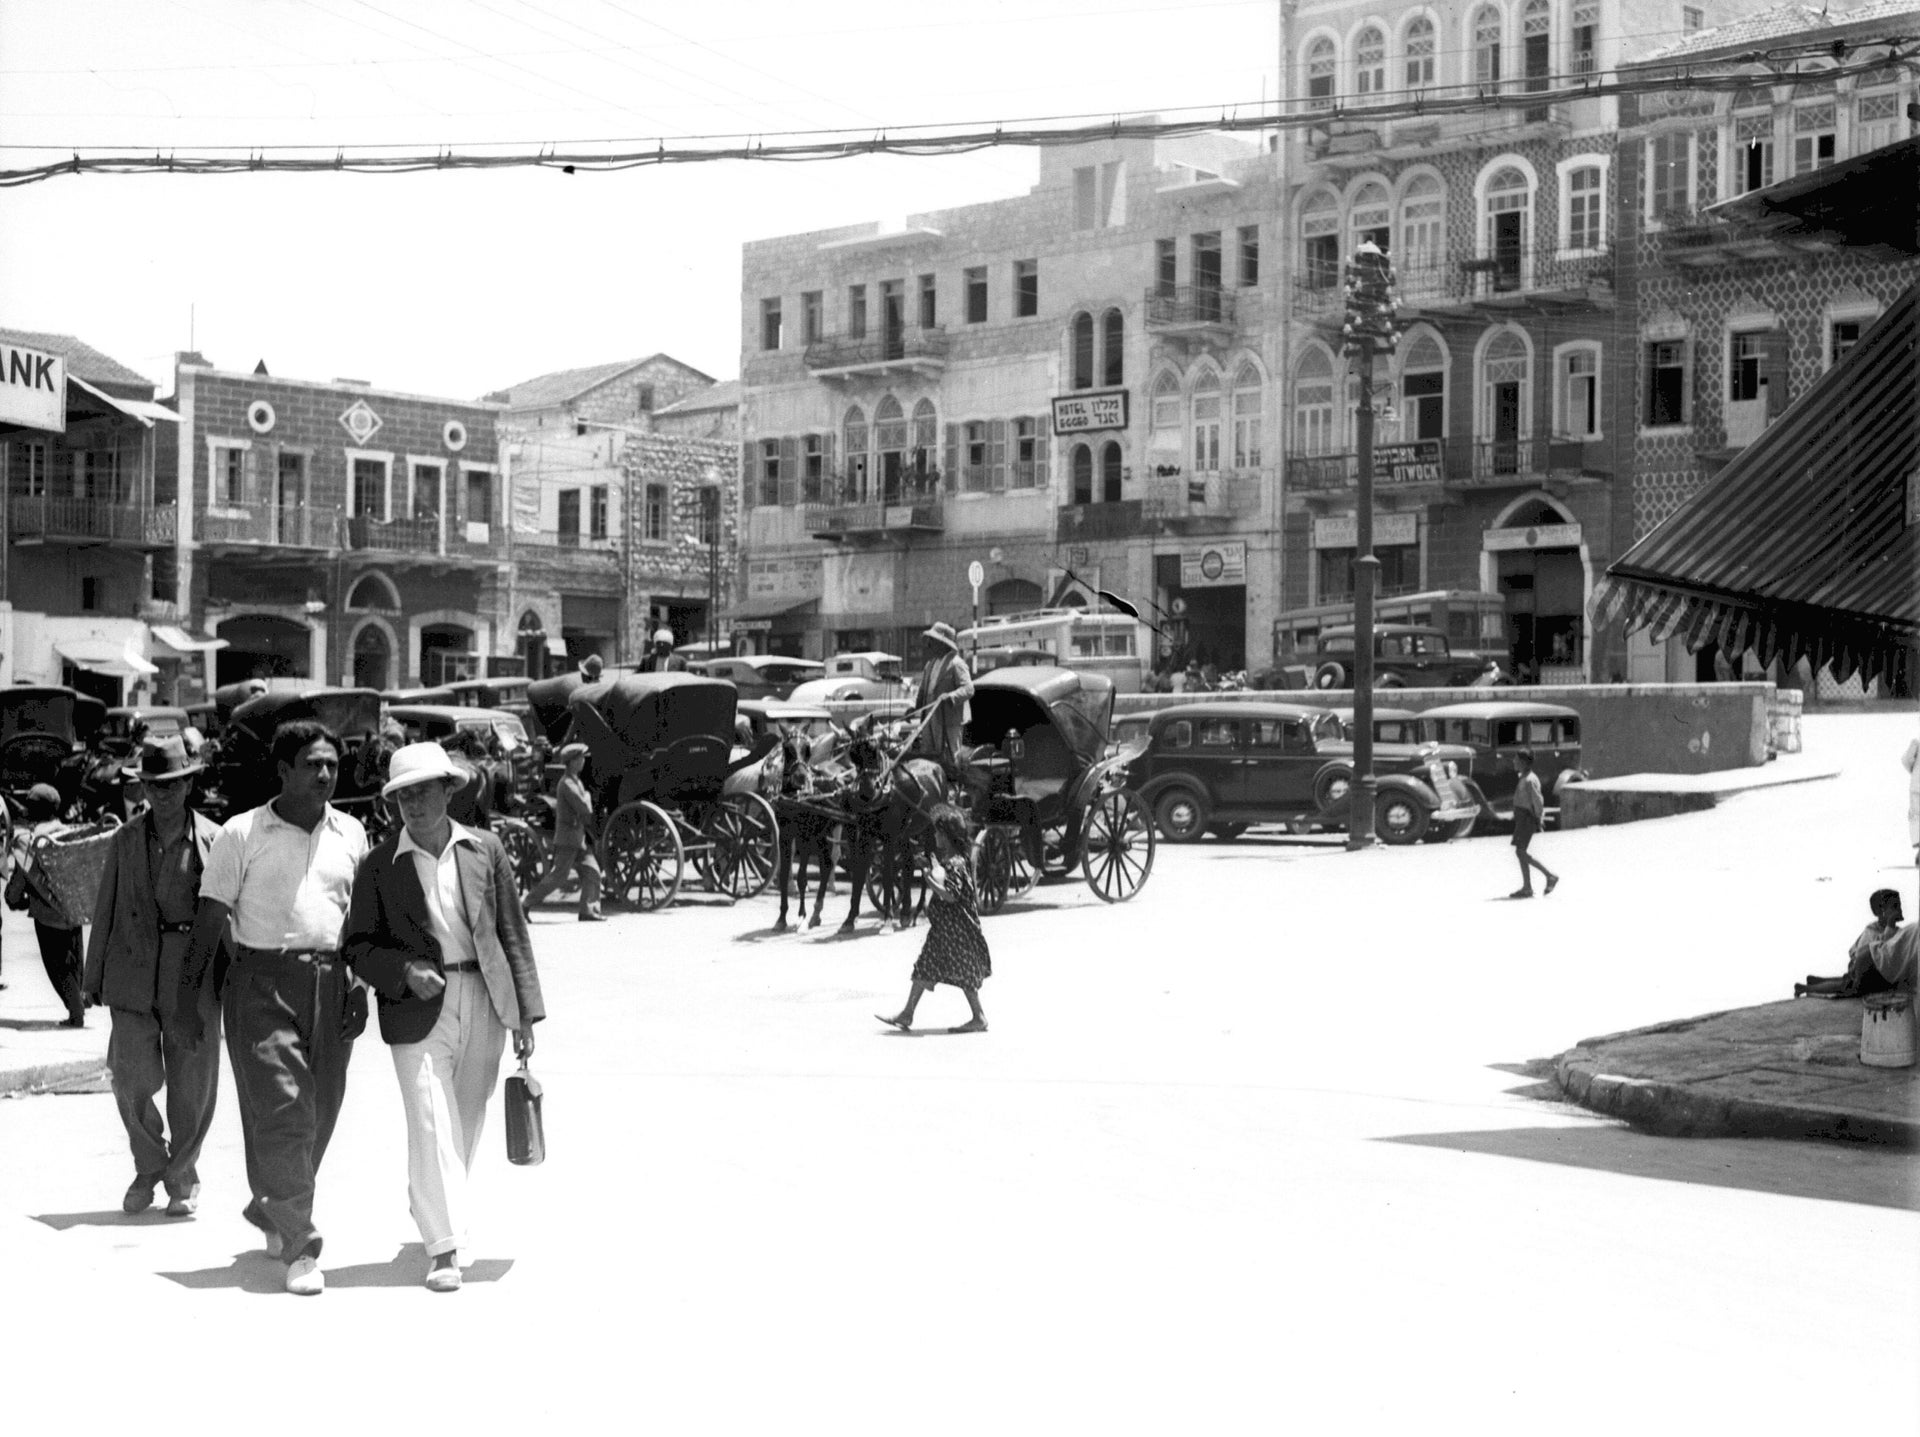 Hamra square in Haifa, 1934.